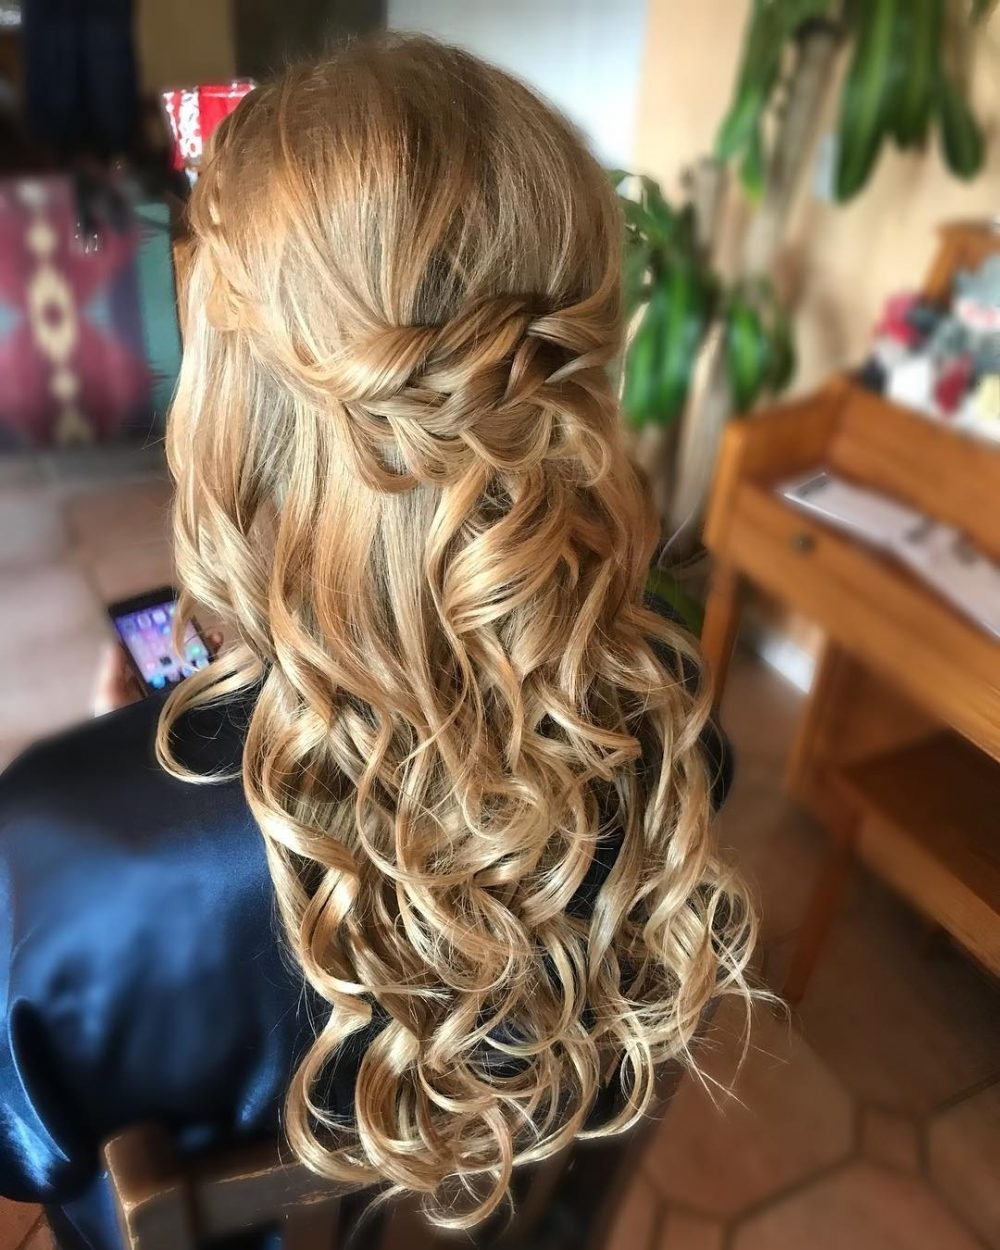 Wedding Hairstyles For Long Hair: 24 Creative & Unique Wedding Styles Intended For 2017 Long Wedding Hairstyles (View 12 of 15)